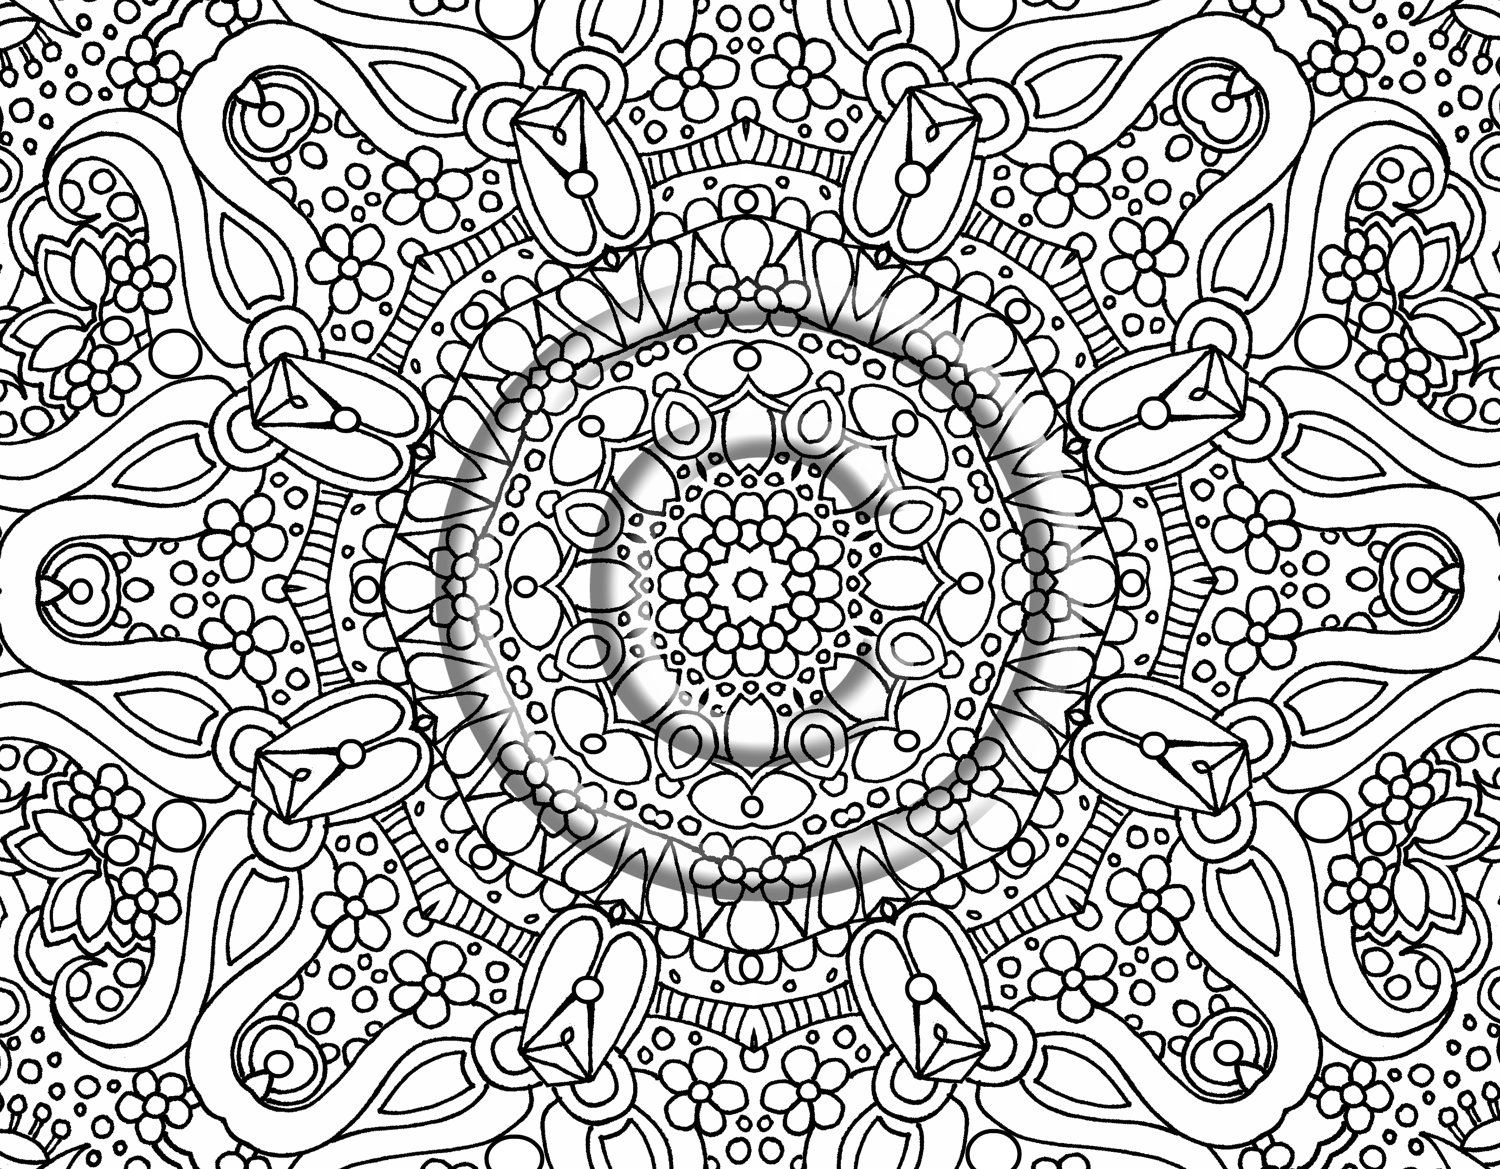 Detailed Coloring Pages For Adults Cool Free Printable Abstract Coloring Pages For Adults